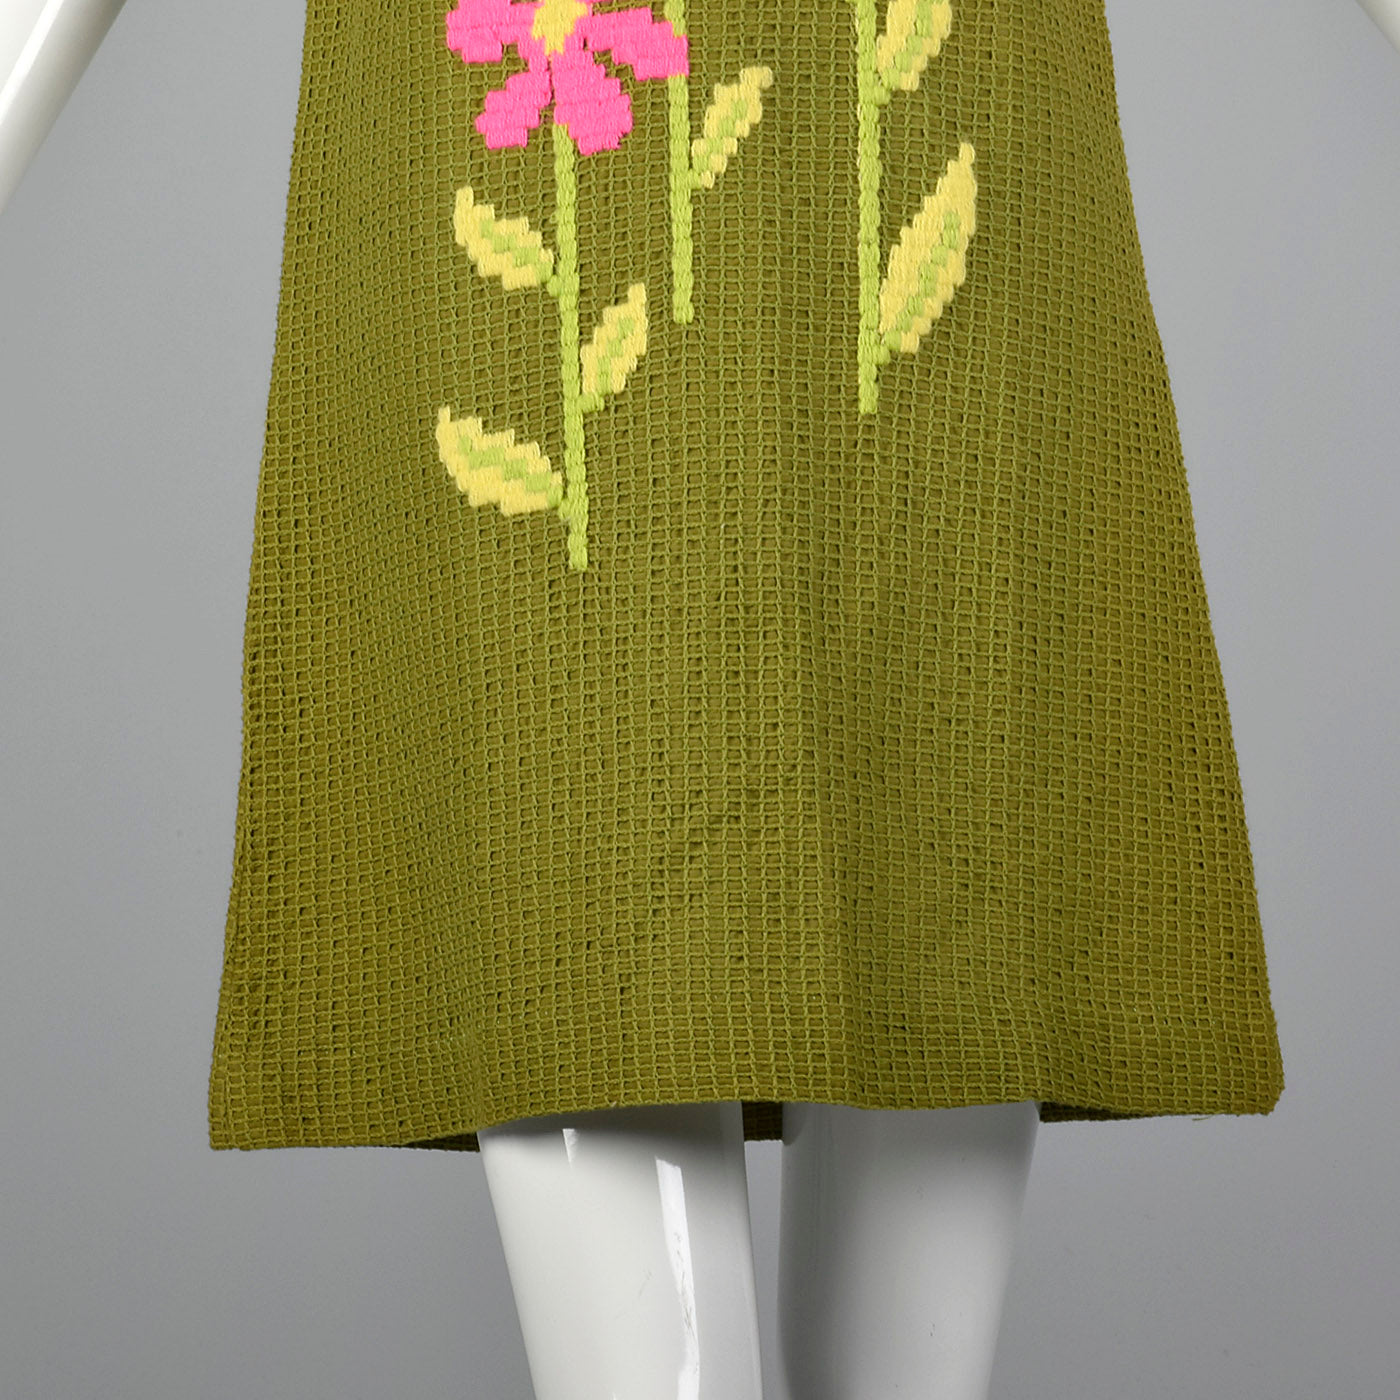 1960s Deadstock Shift Dress with Mesh-Style Overlay